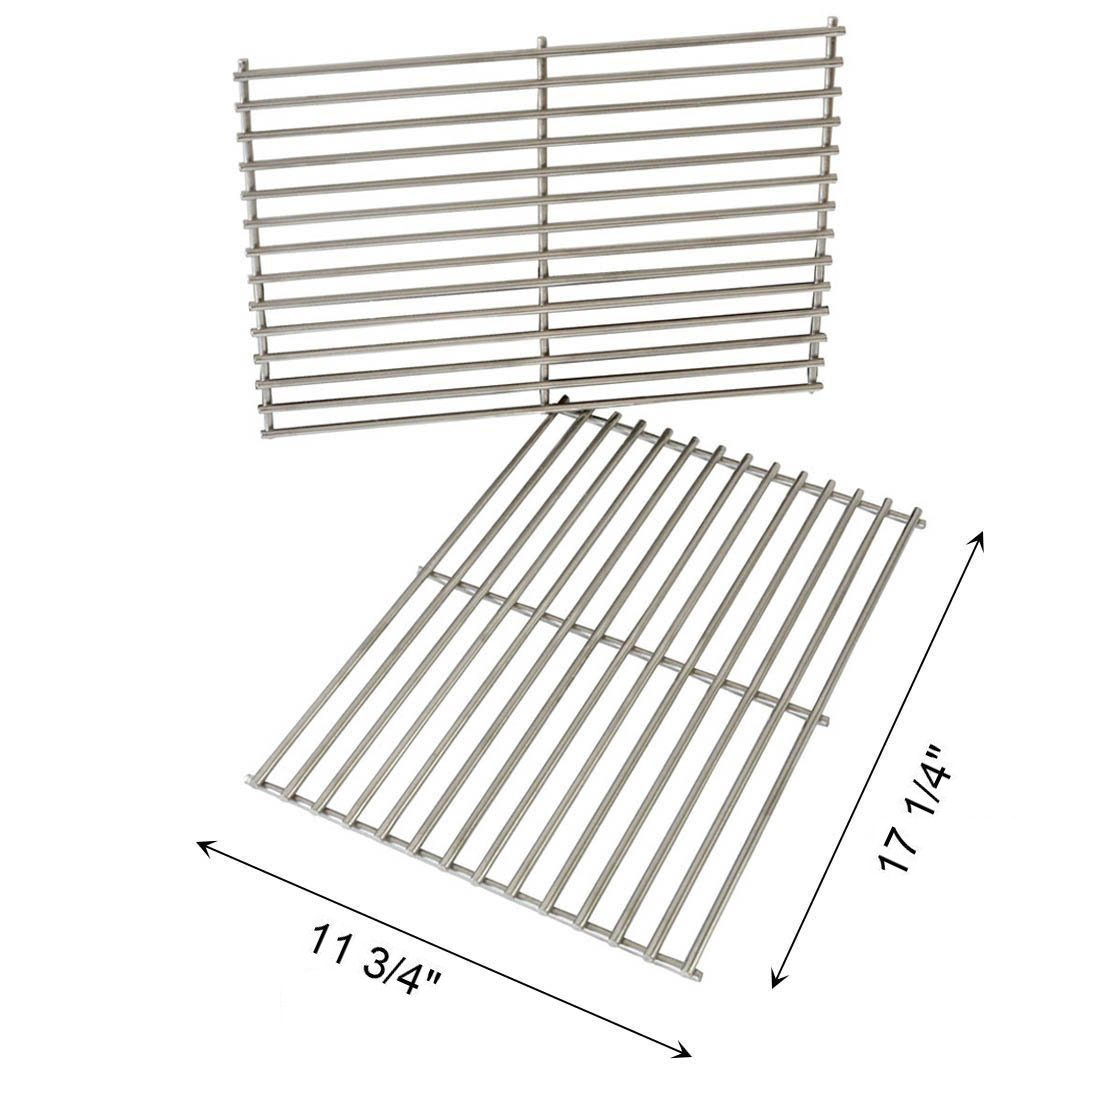 FAS INDUSTRY Cladding BBQ Cooking Grate Replacement Parts for Weber 7527 9930 Spirit and Lowes, Outdoor Cooking Grill Grid for Weber Grill Parts Replacement- 11 3/4'' x 17 1/4'', Set of 2 by FAS INDUSTRY